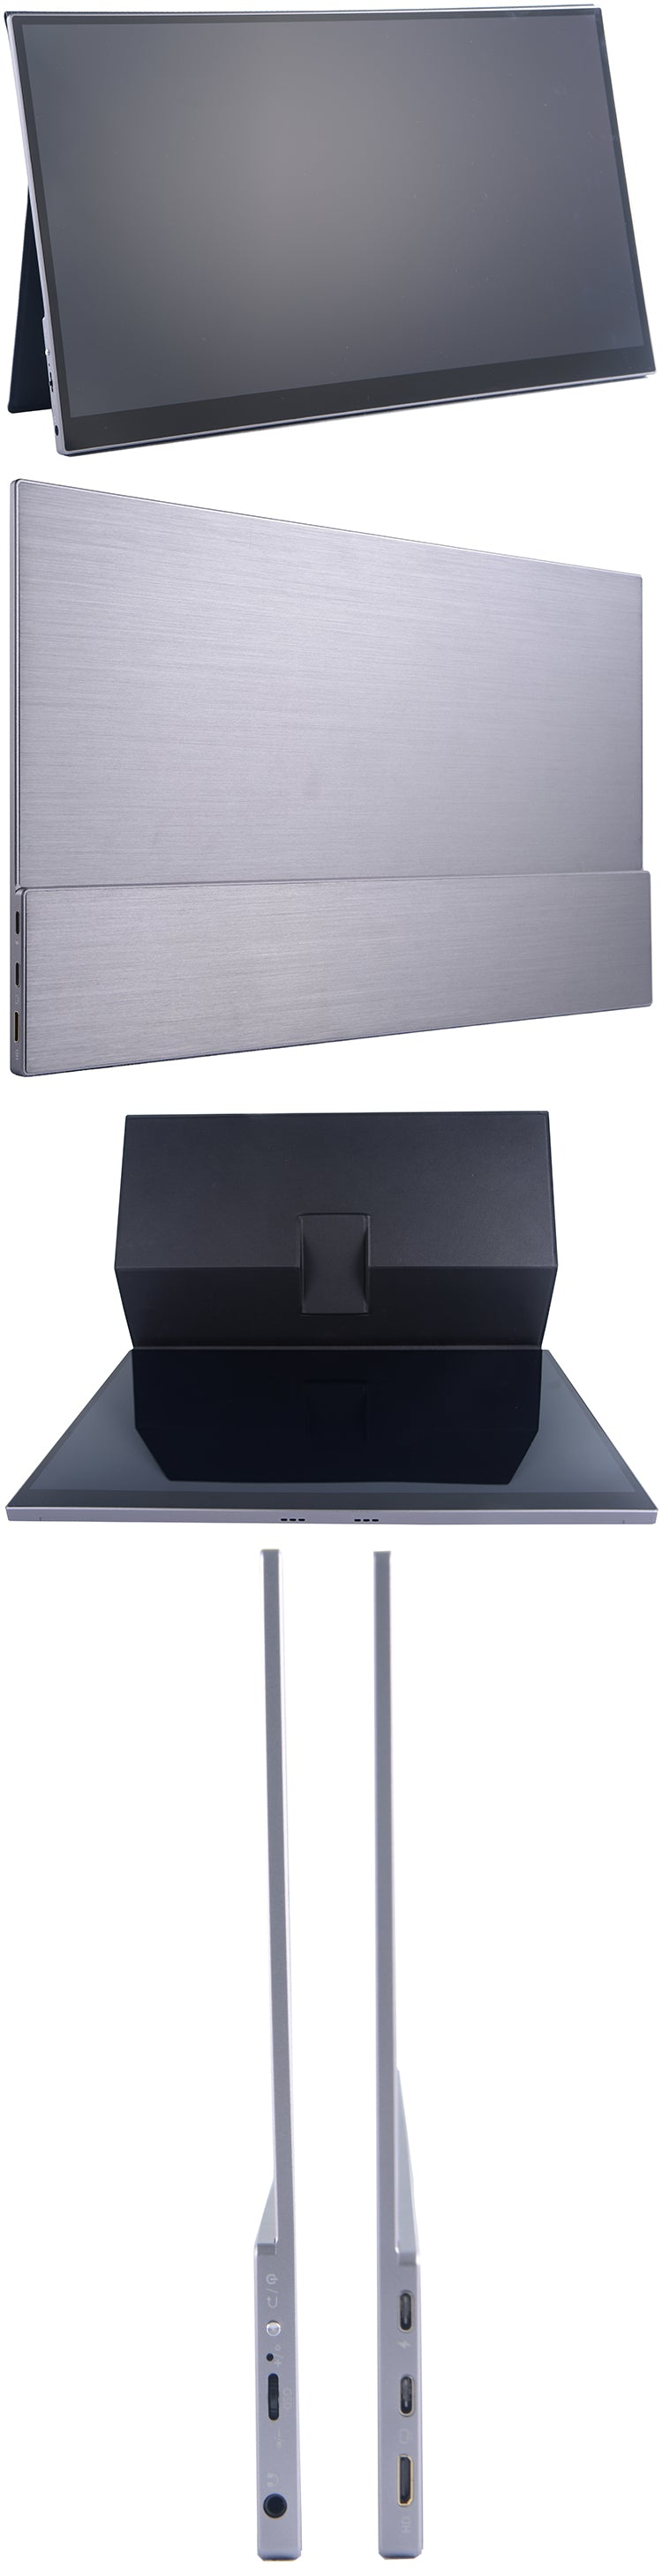 appearance of qled portable monitor